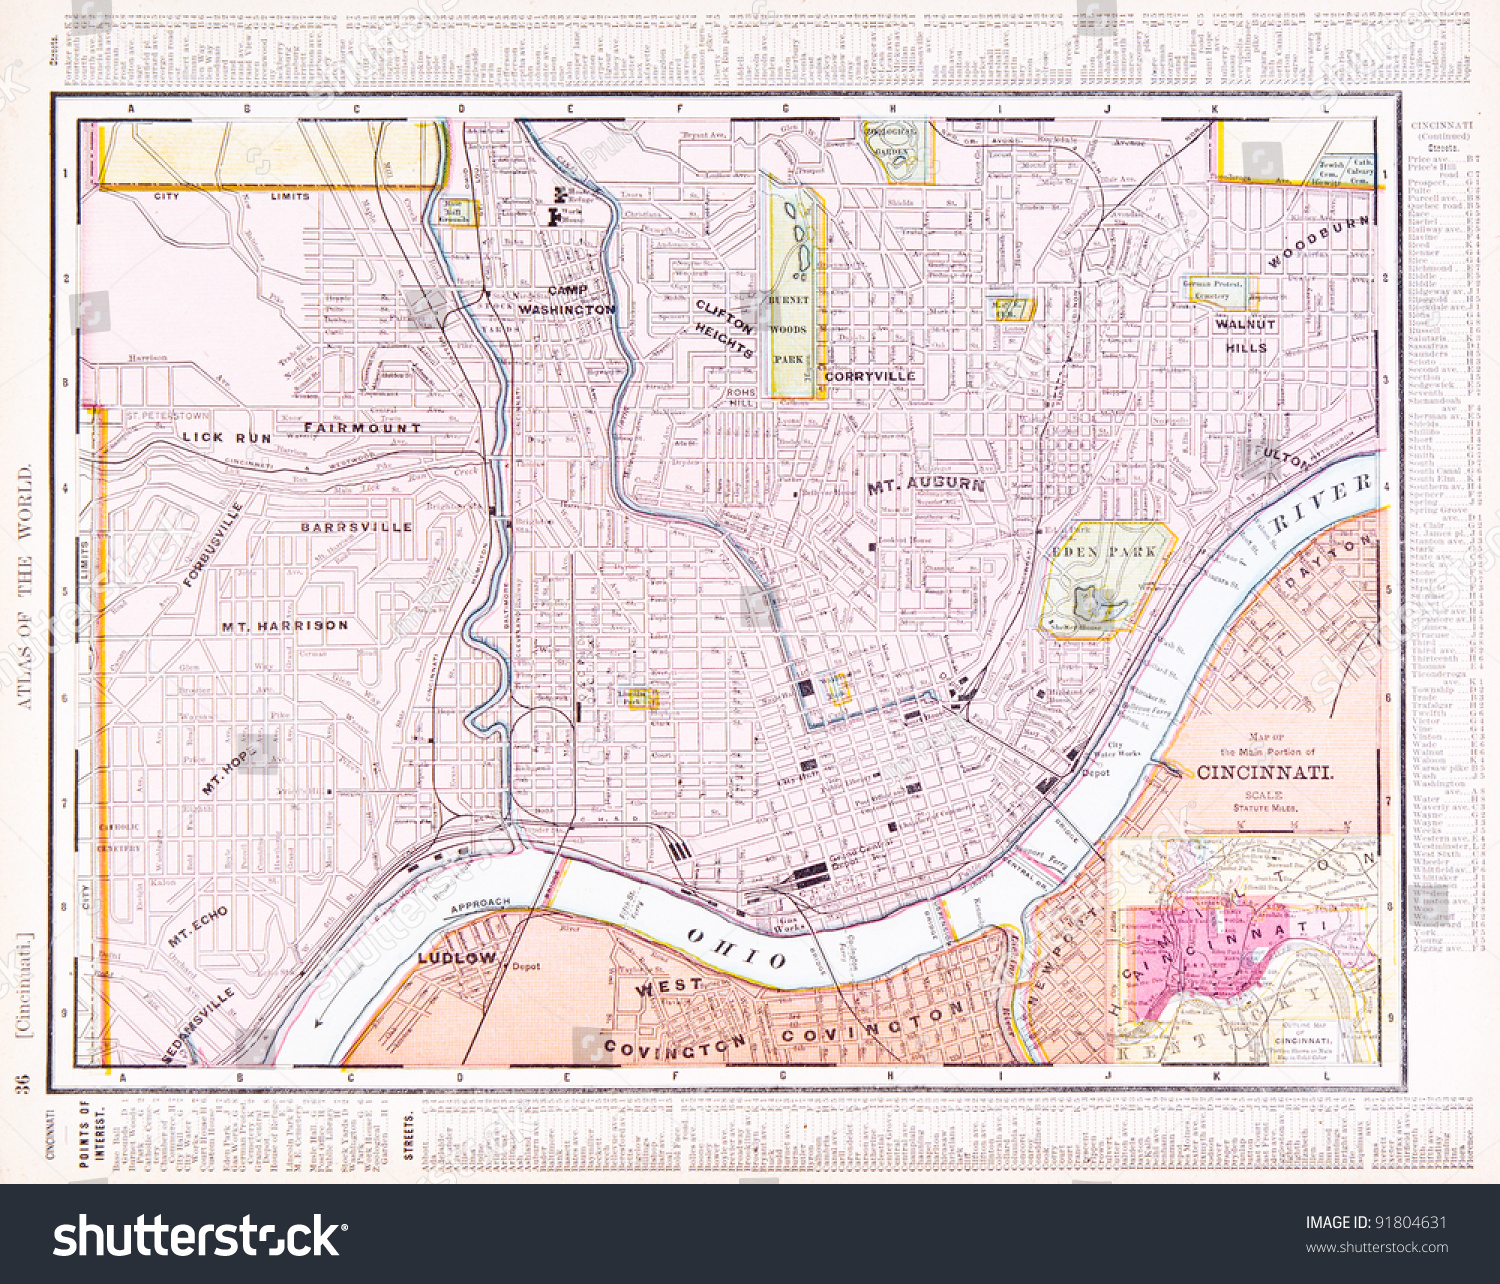 Map Cincinnati Ohio USA Spoffords Atlas Stock Photo (Edit Now ... on